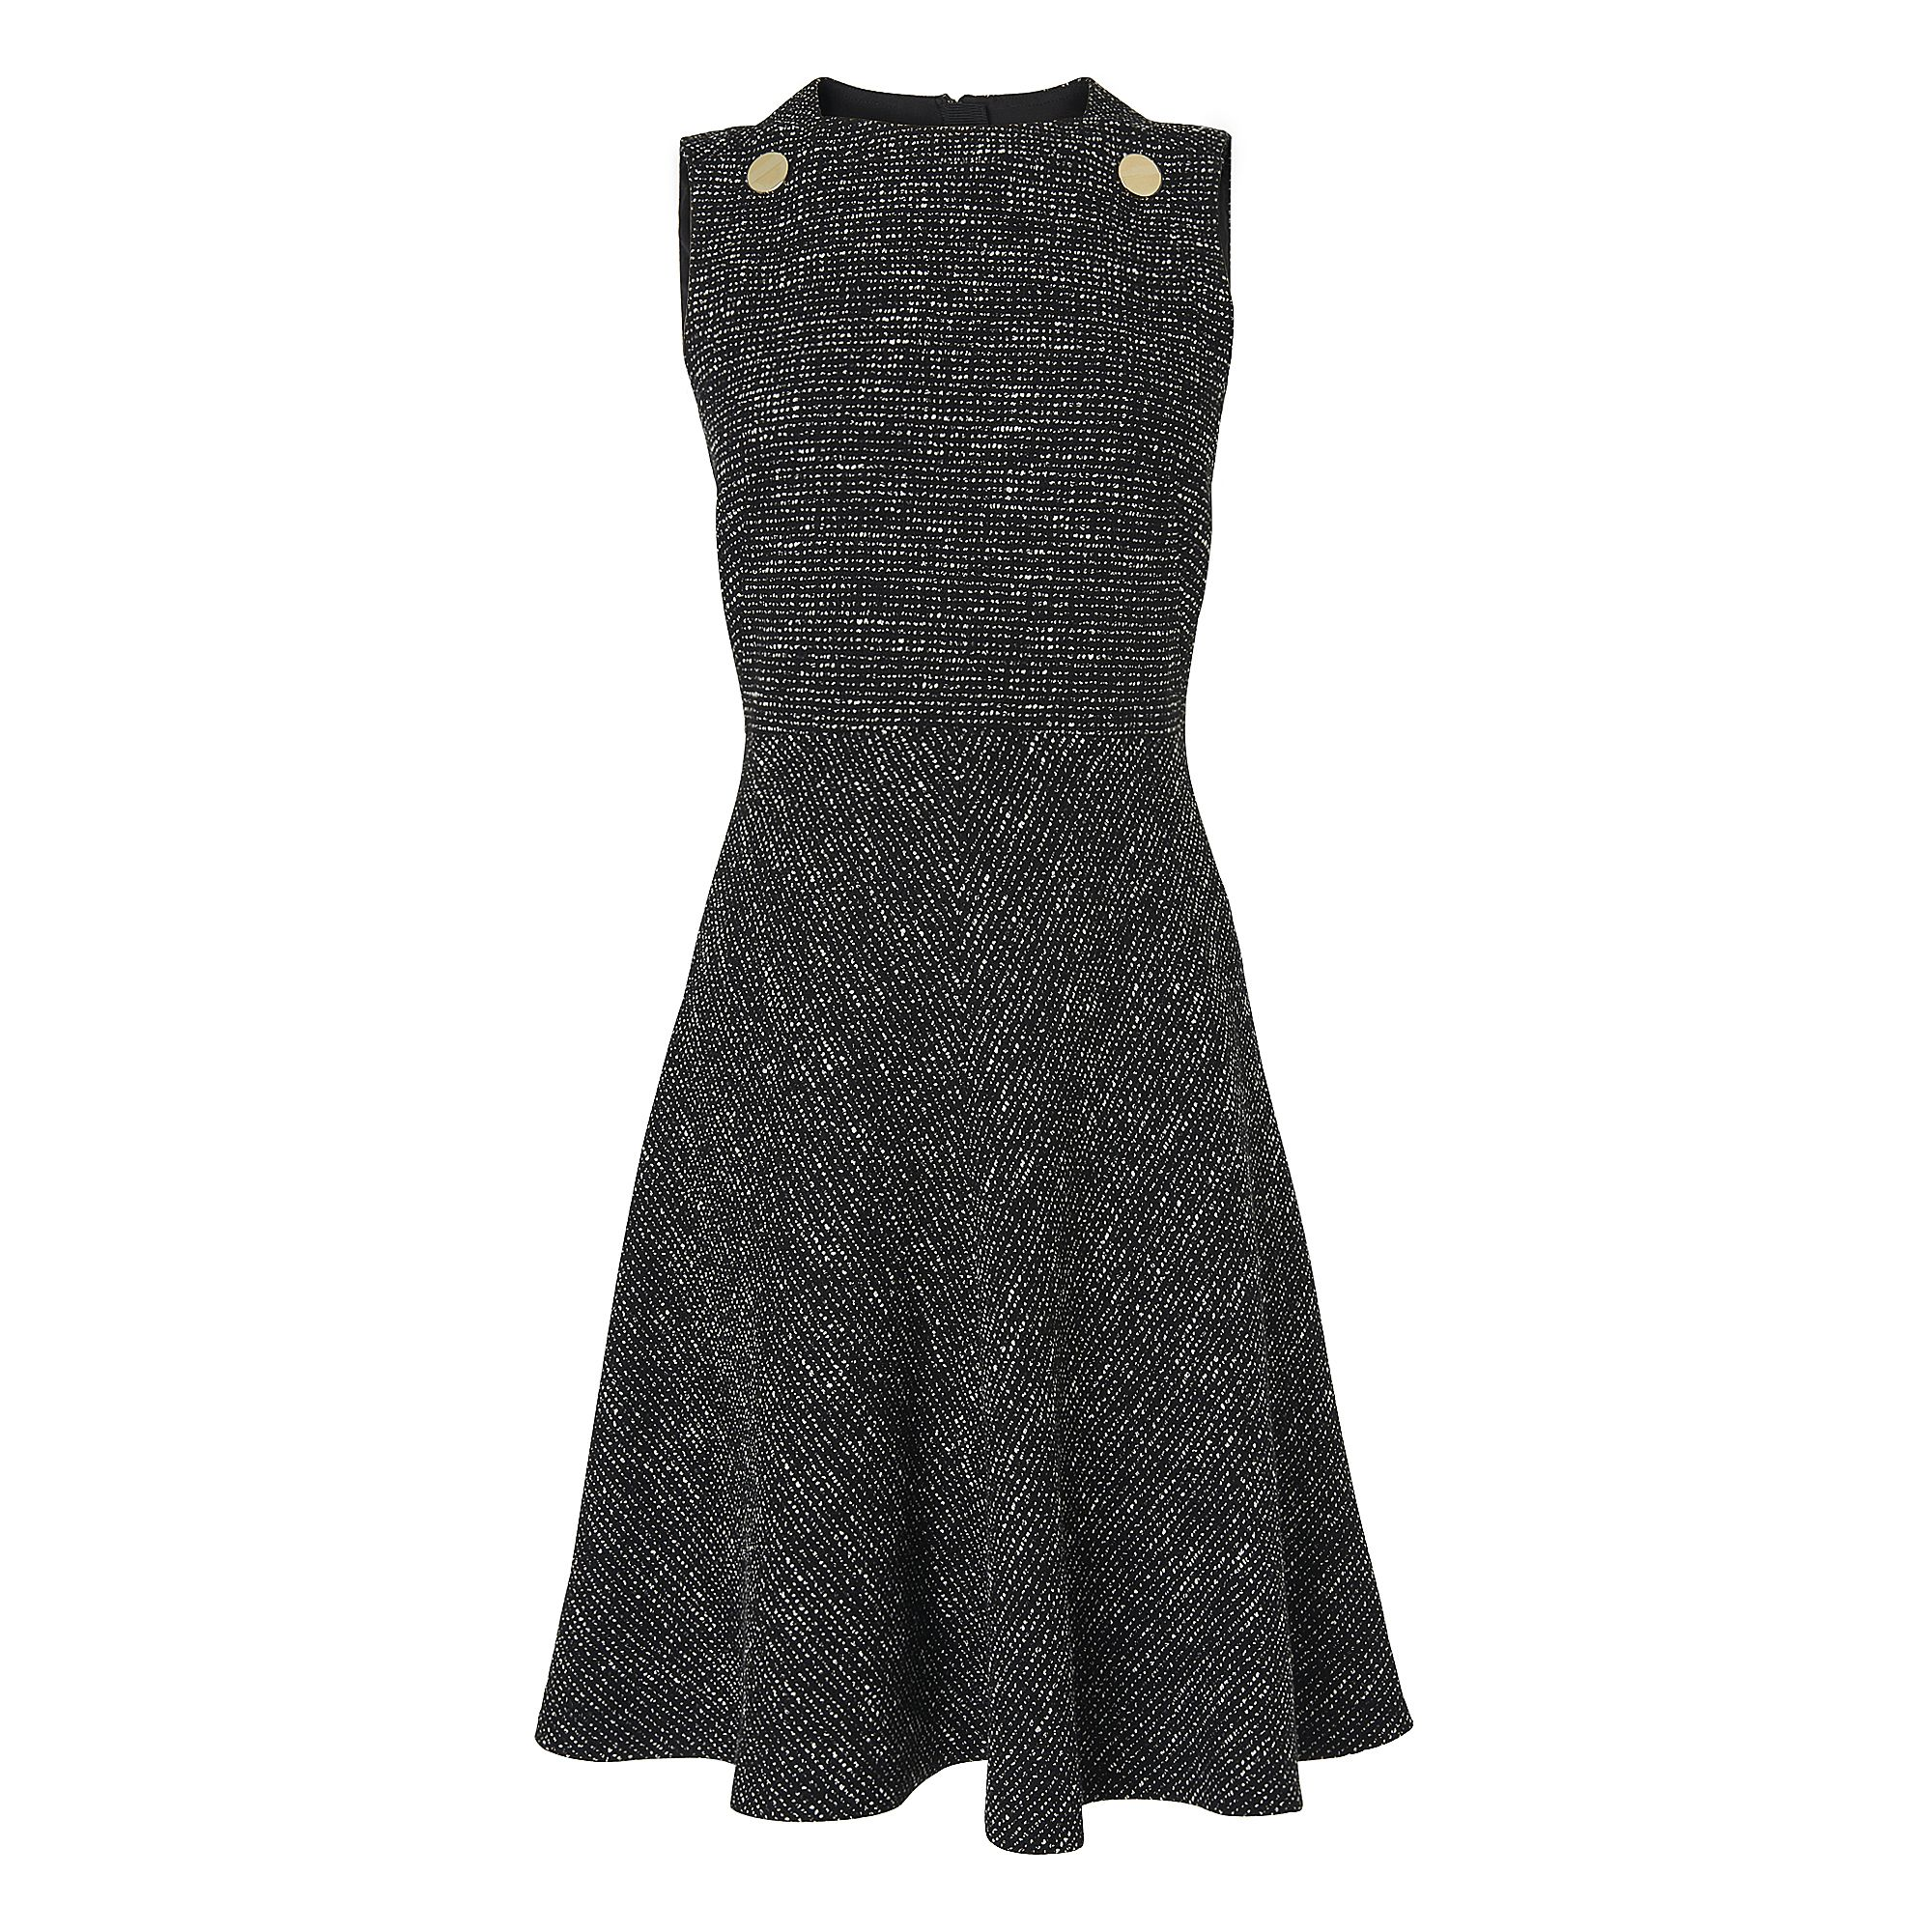 L.K. Bennett Shelby Tweed Dress, Black